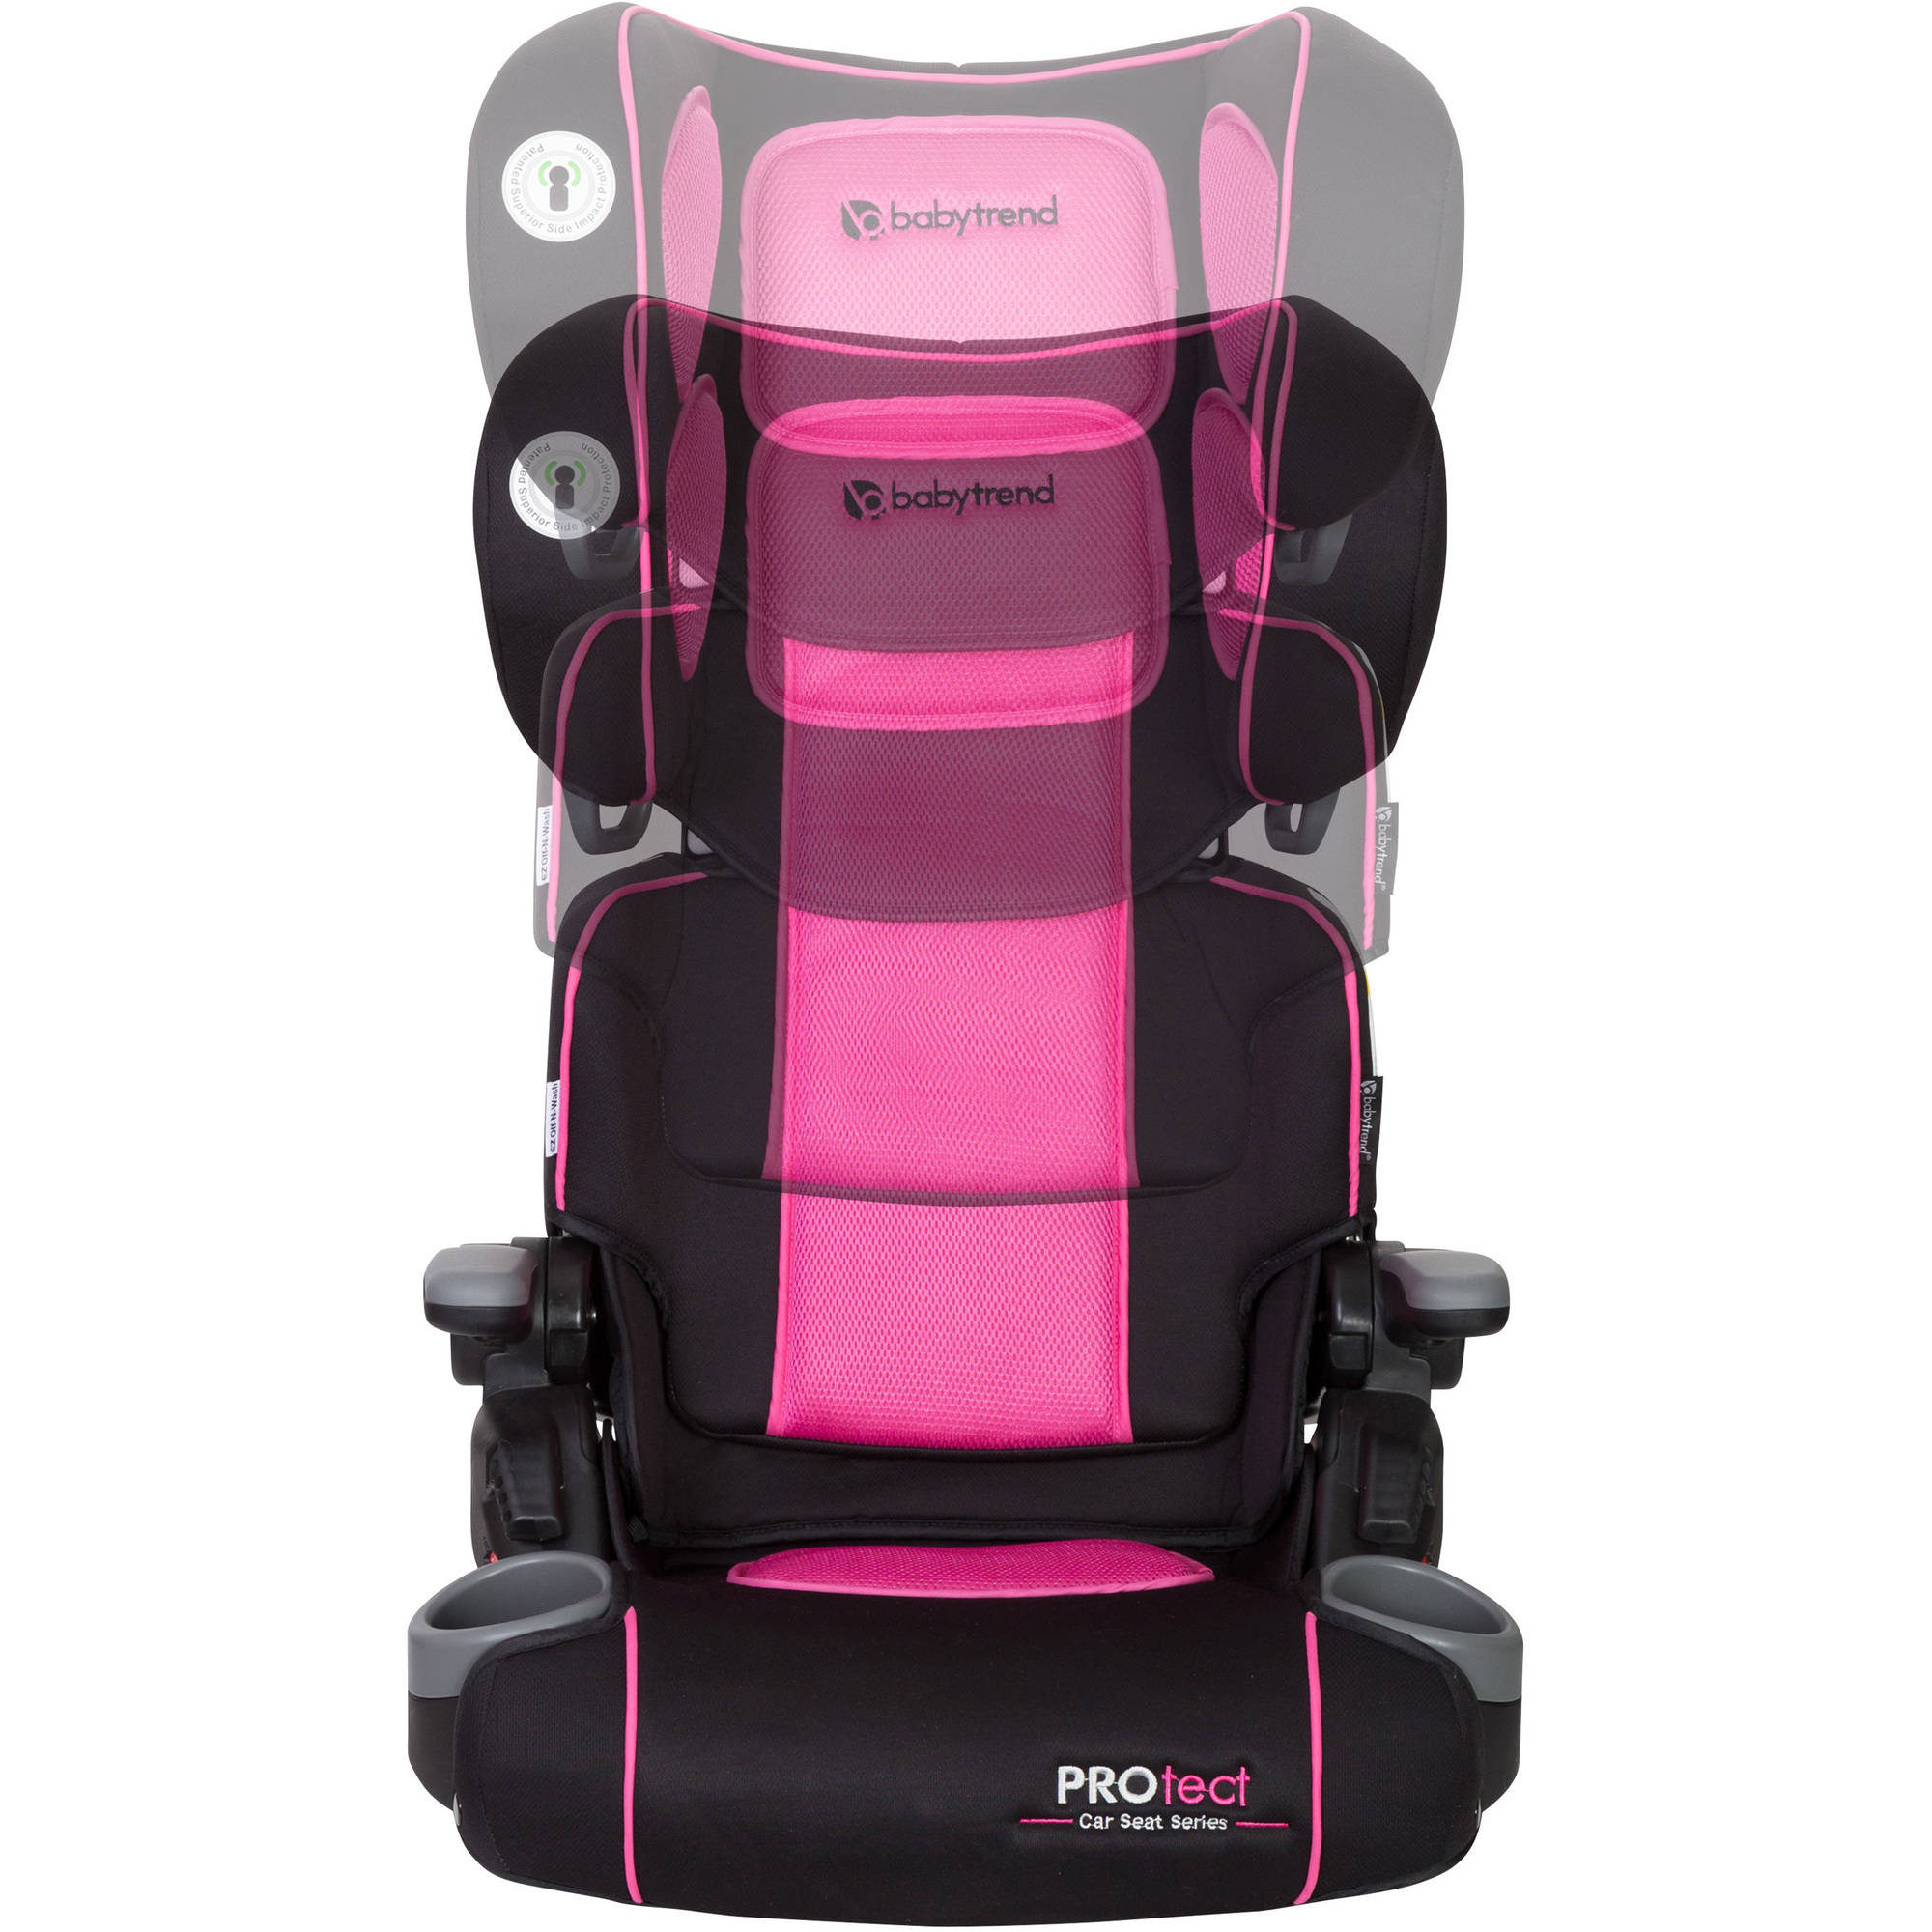 baby trend protect yumi folding booster car seat ophelia ebay. Black Bedroom Furniture Sets. Home Design Ideas